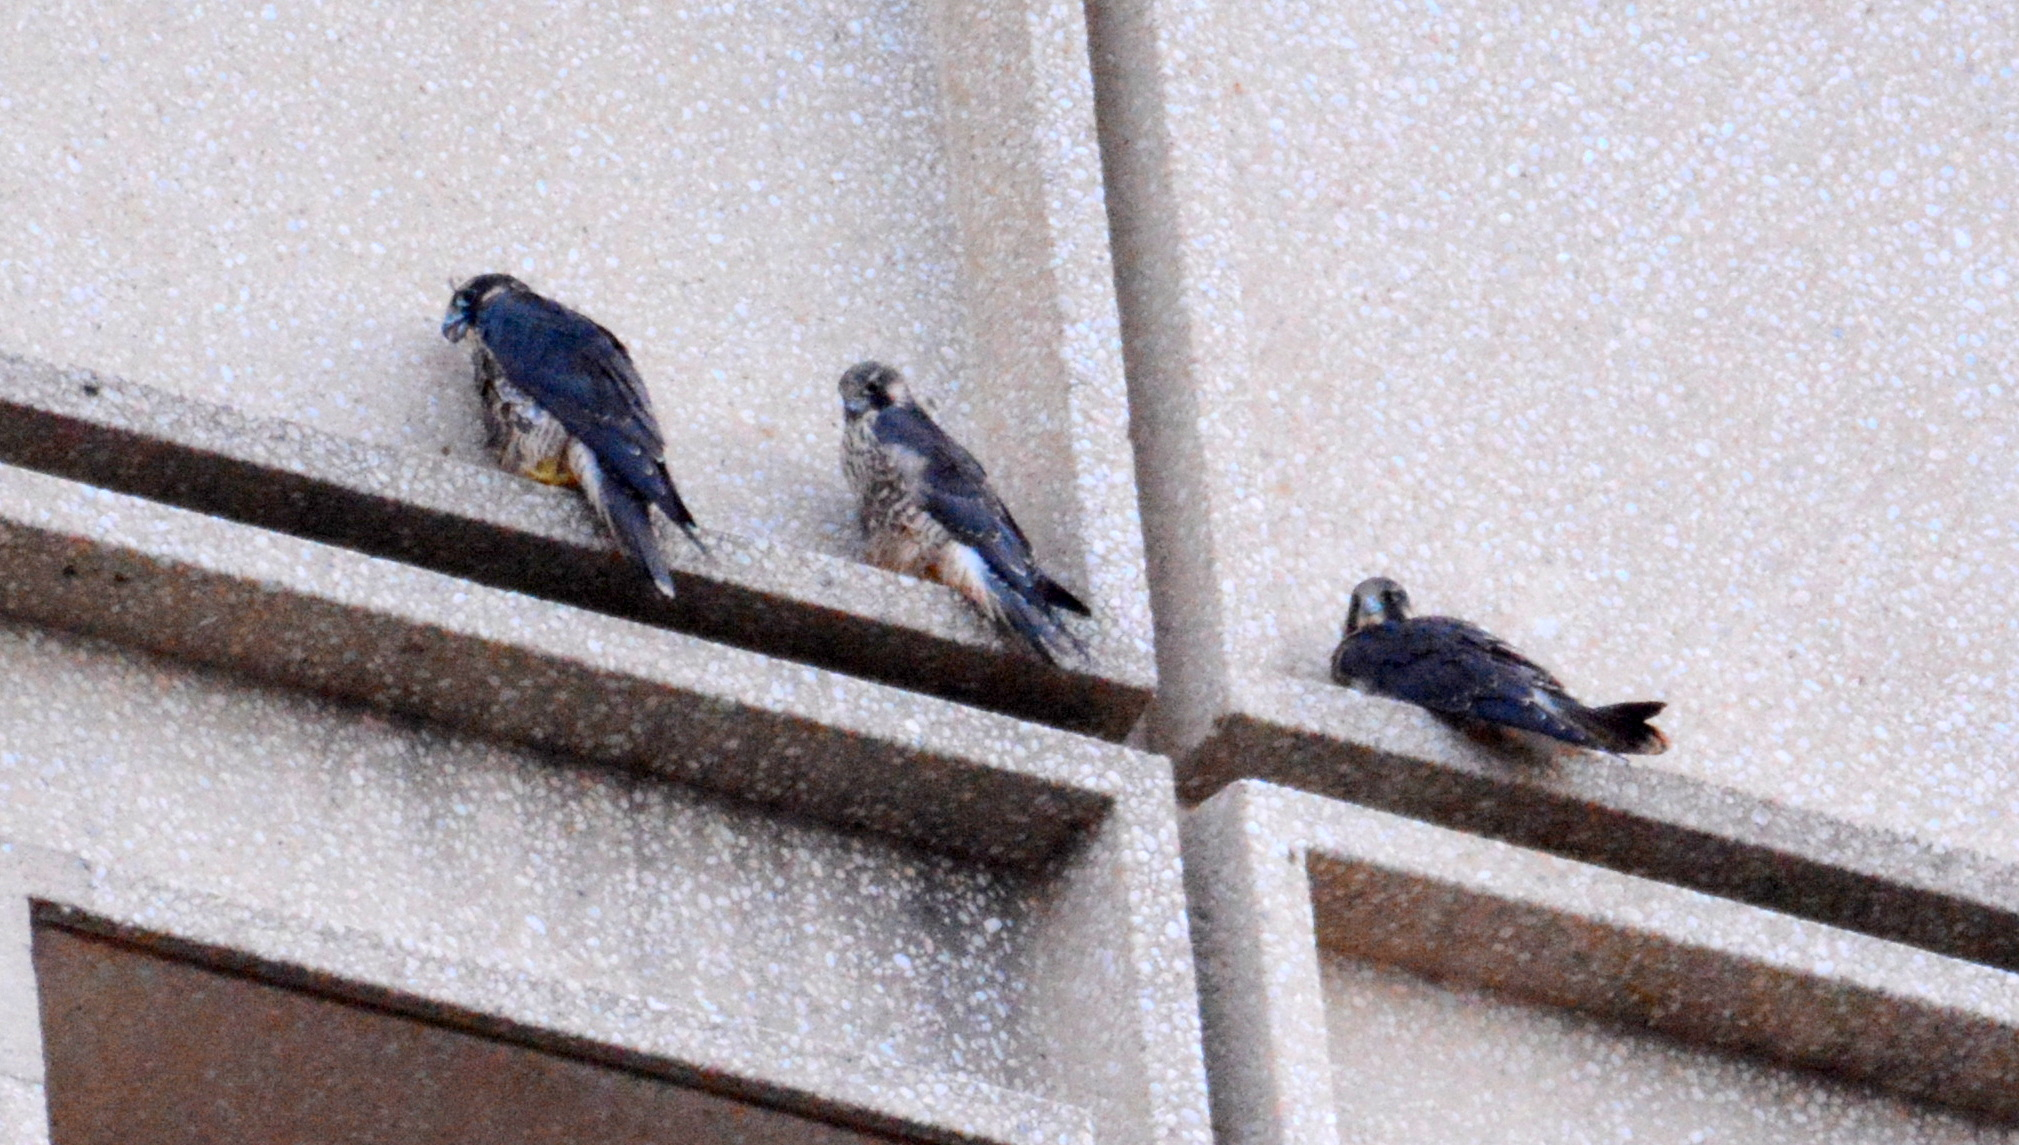 Arriving at their perches on the State Office building for the night